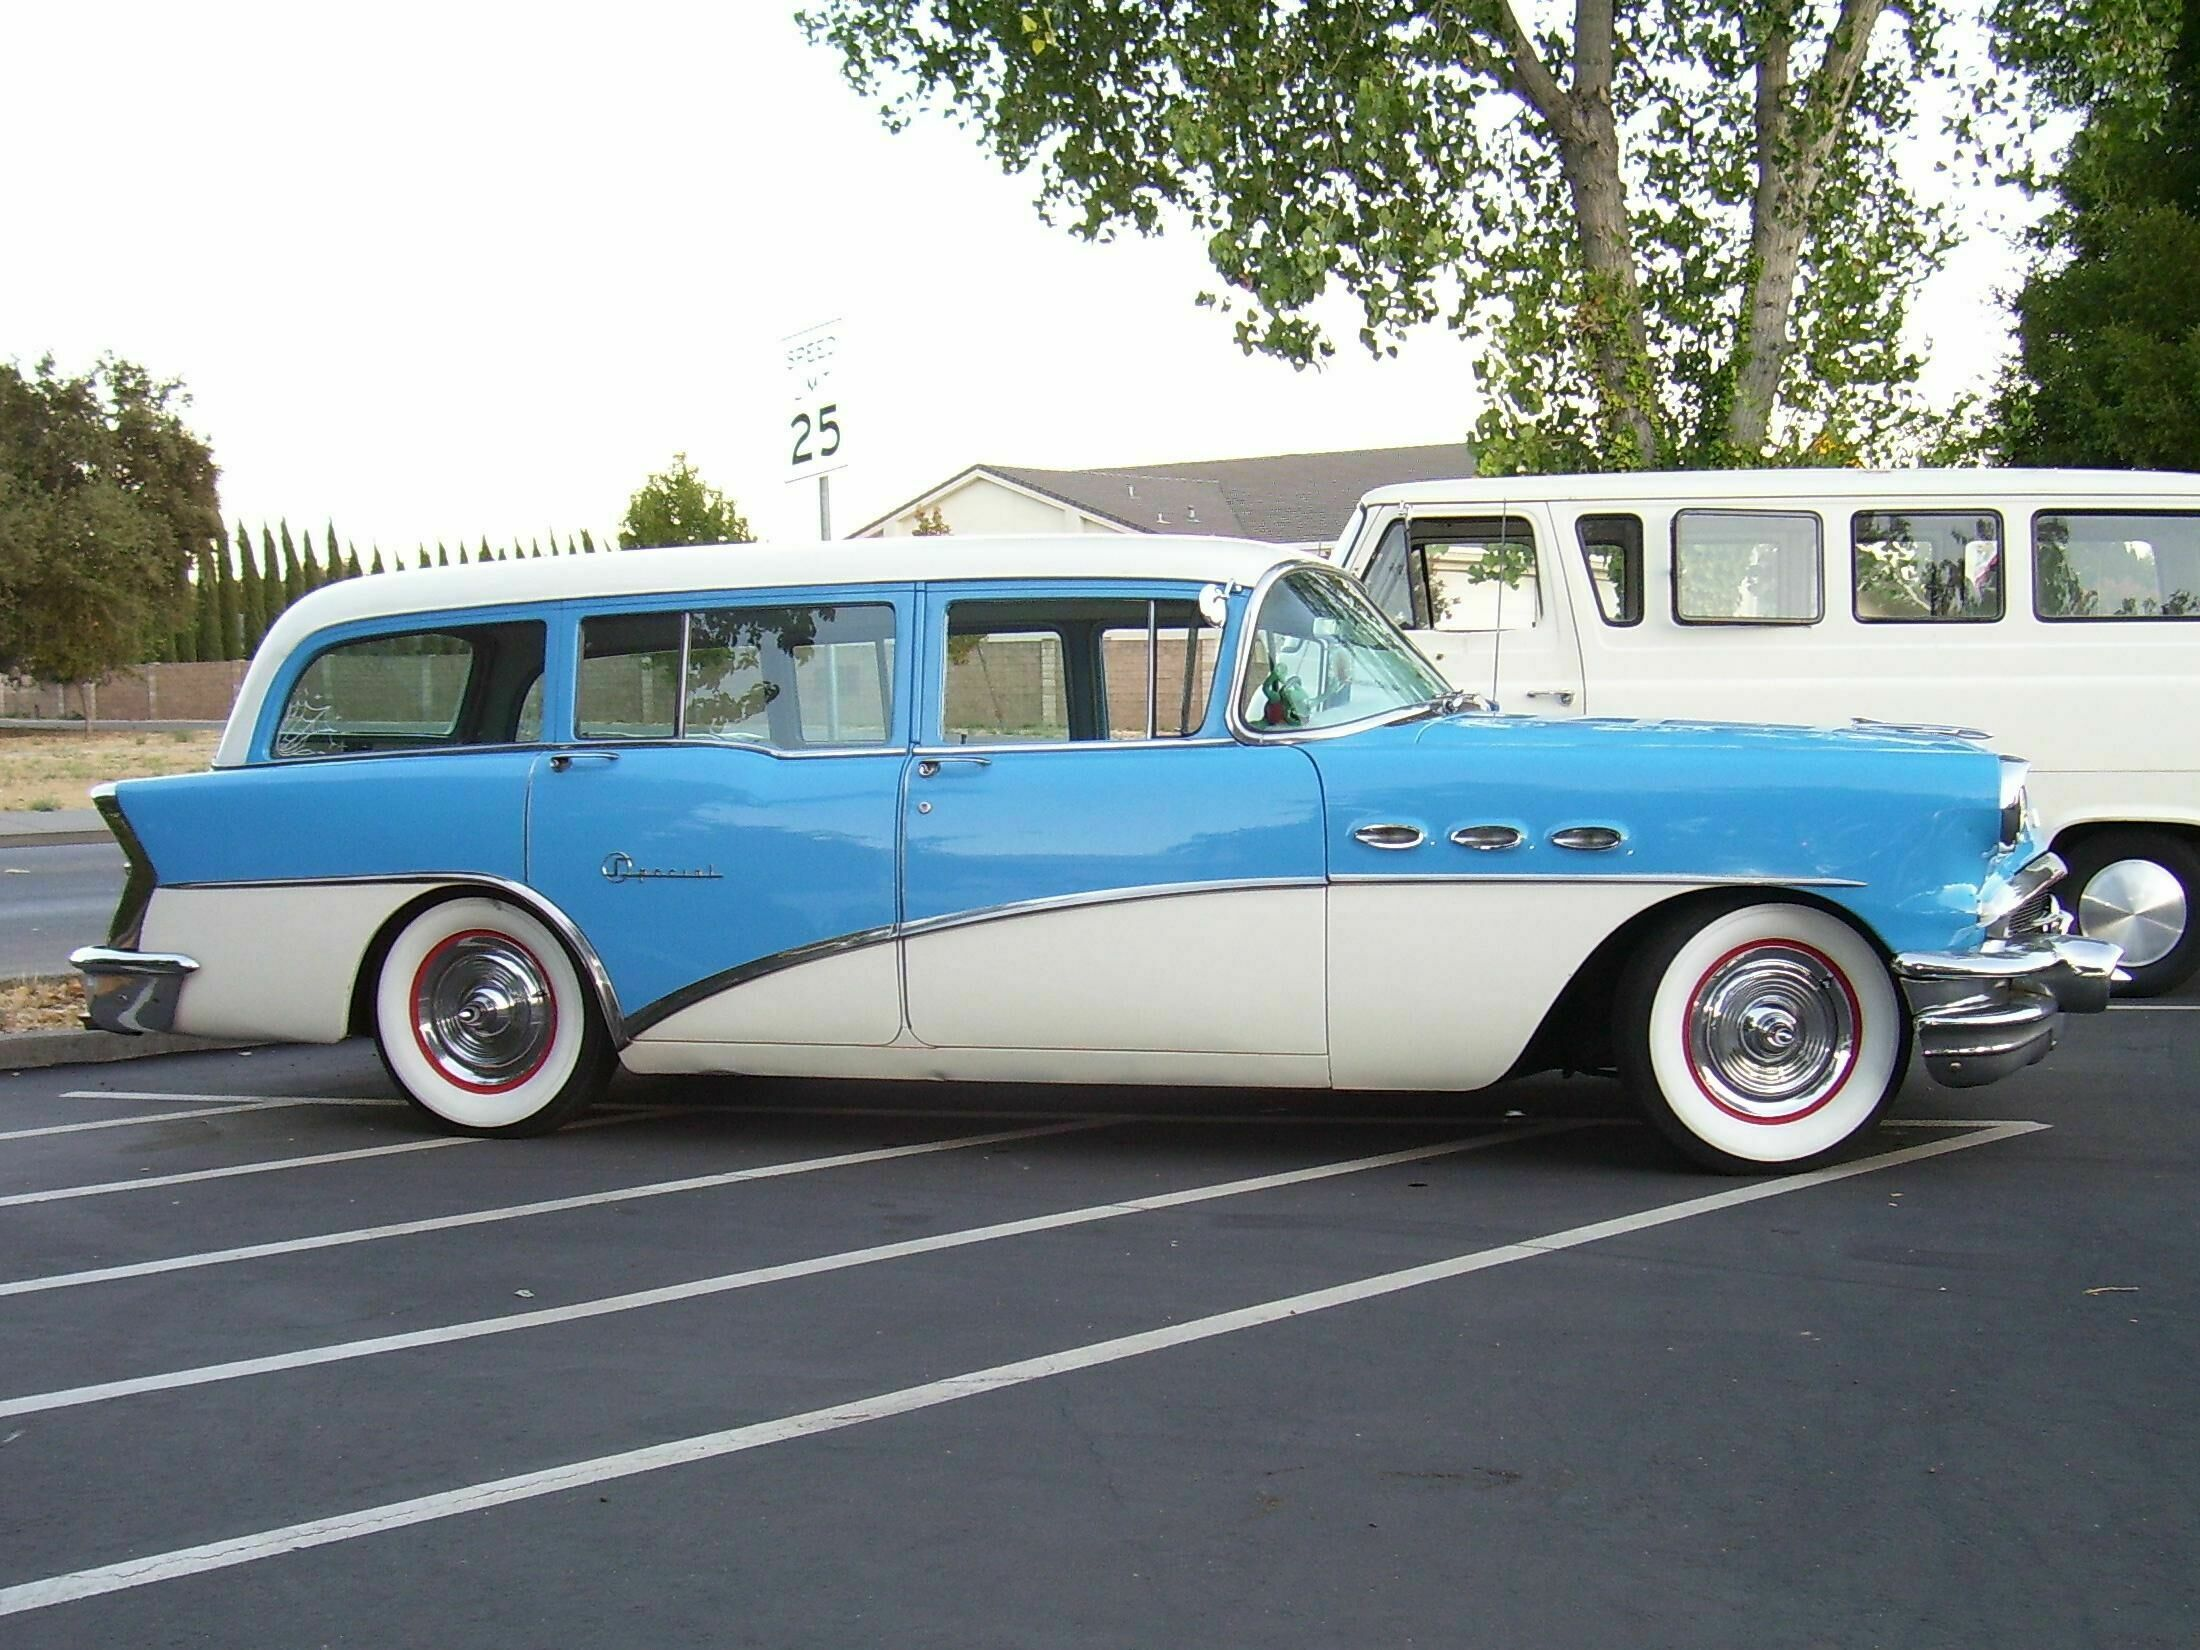 1956 Buick Special Station Wagon 'BHH 532' | Flickr - Photo Sharing!